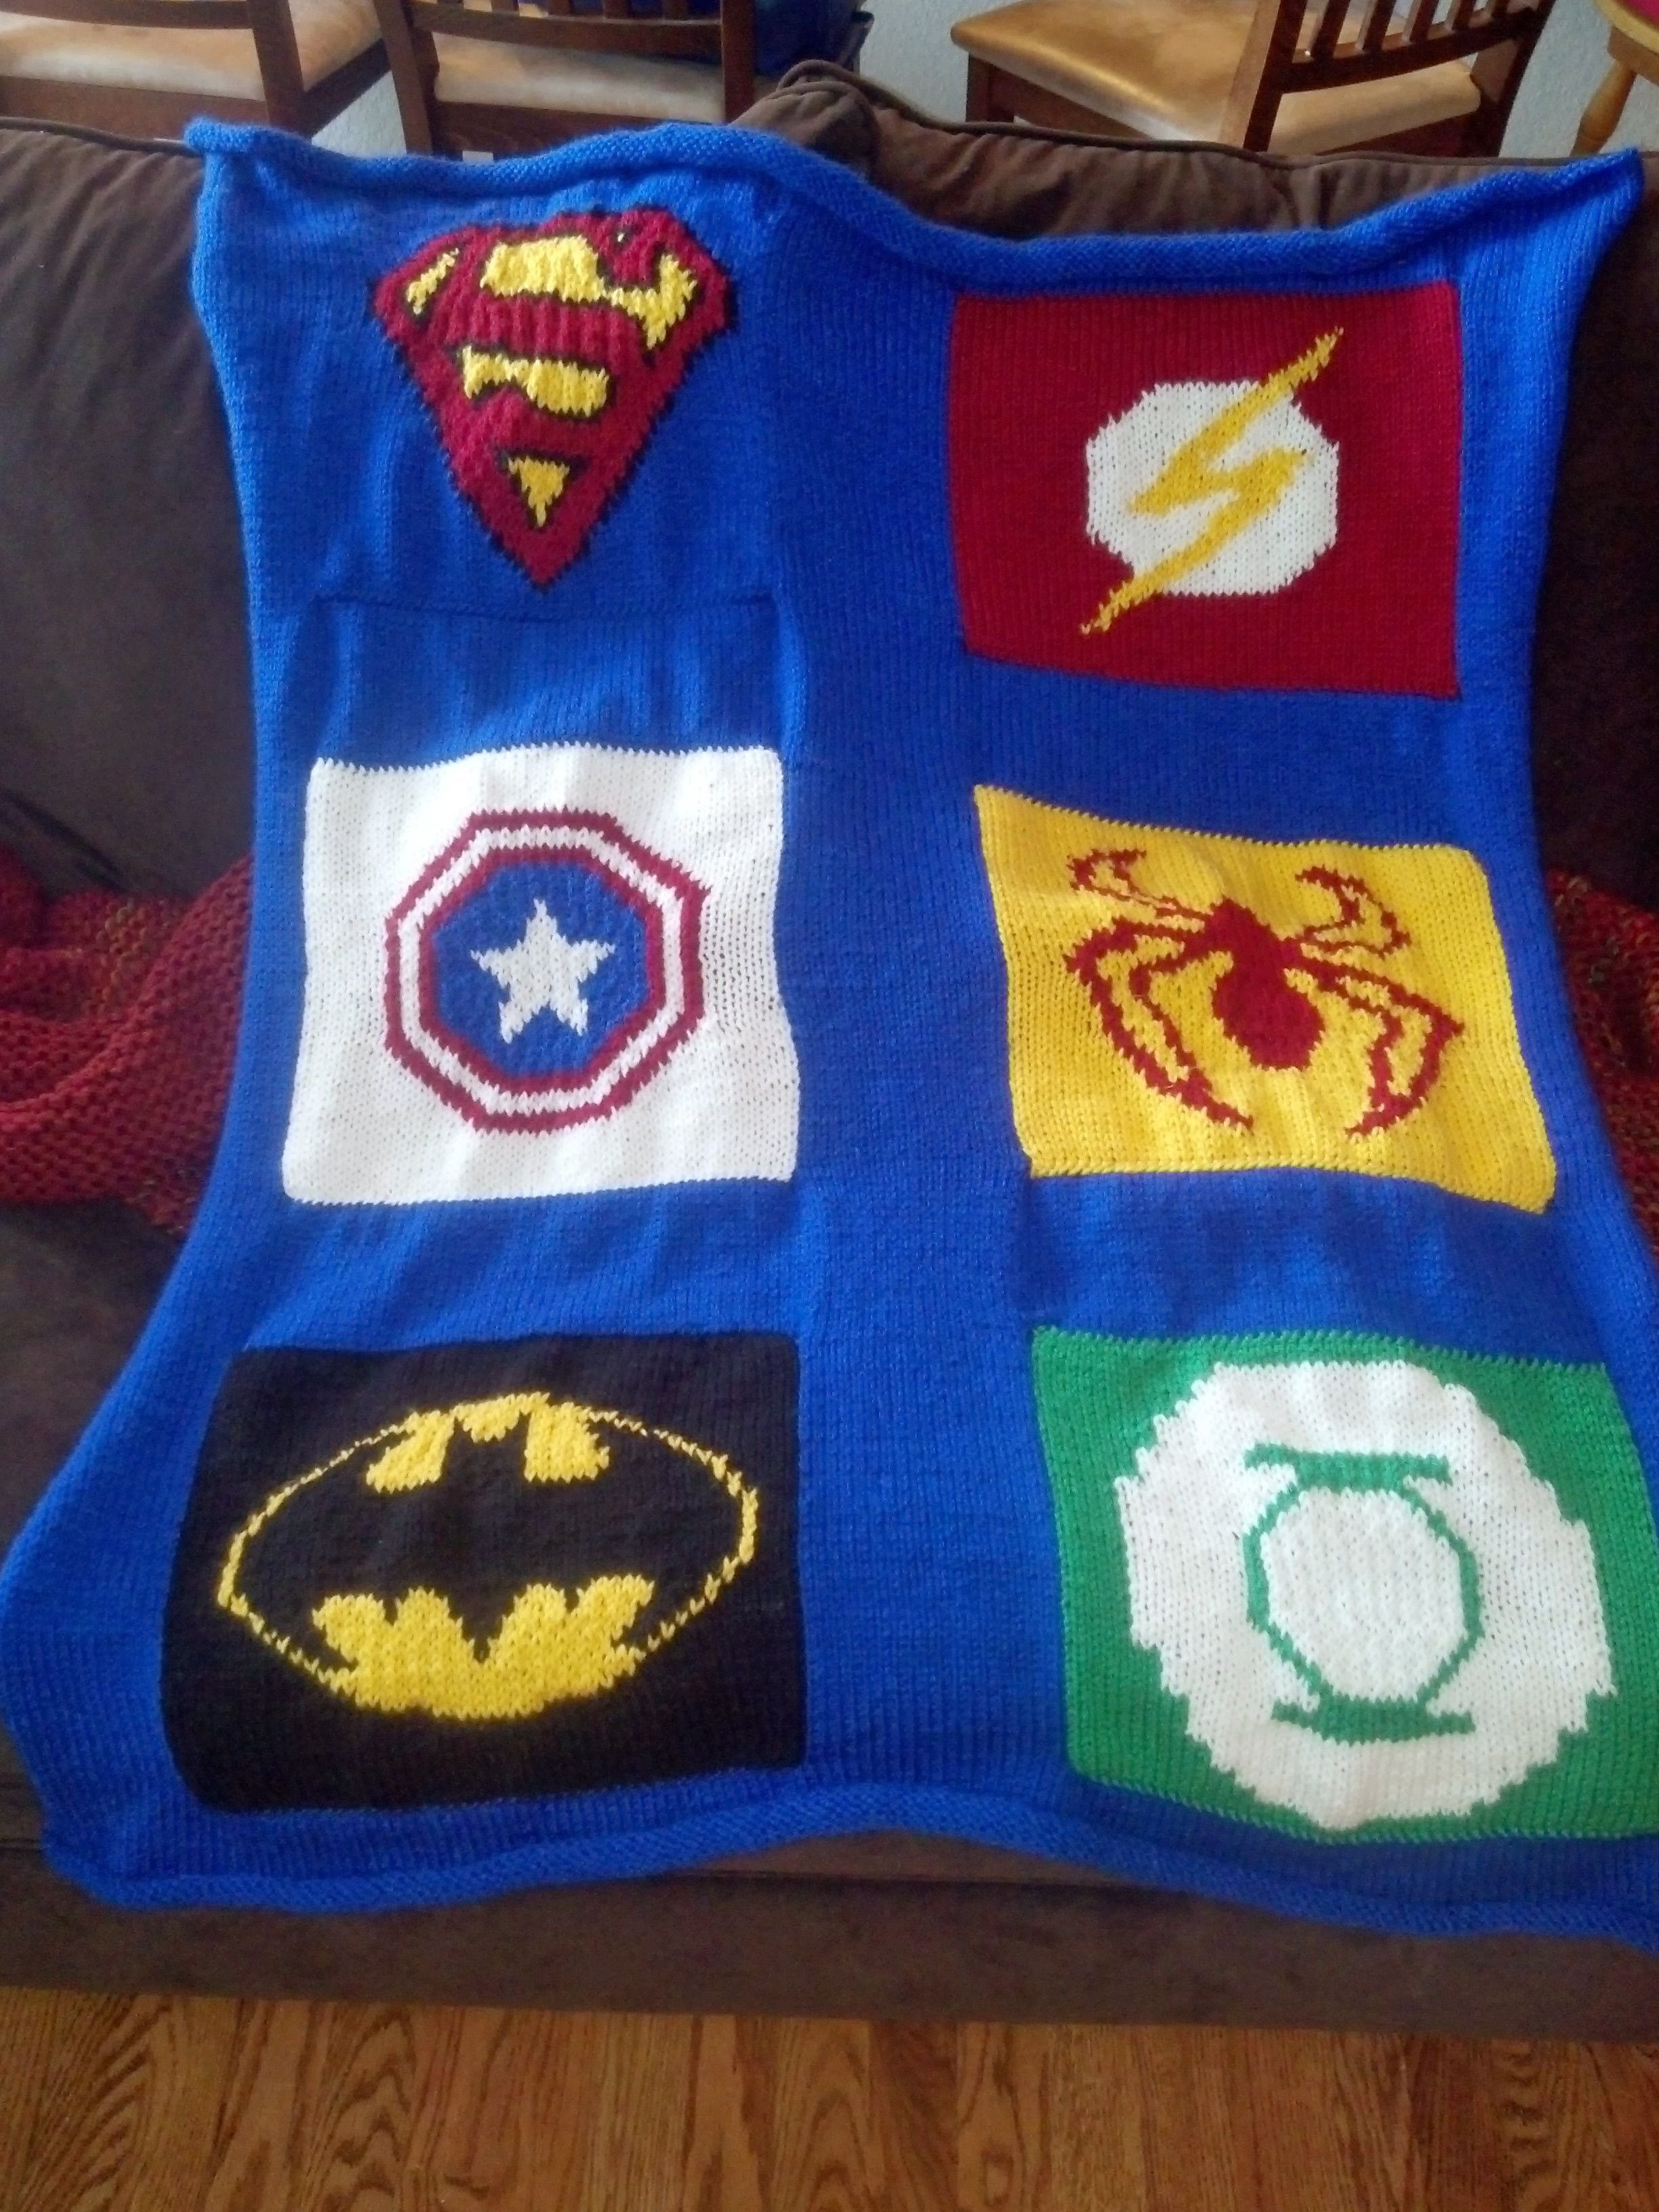 Knit Blanket made from superhero patterns